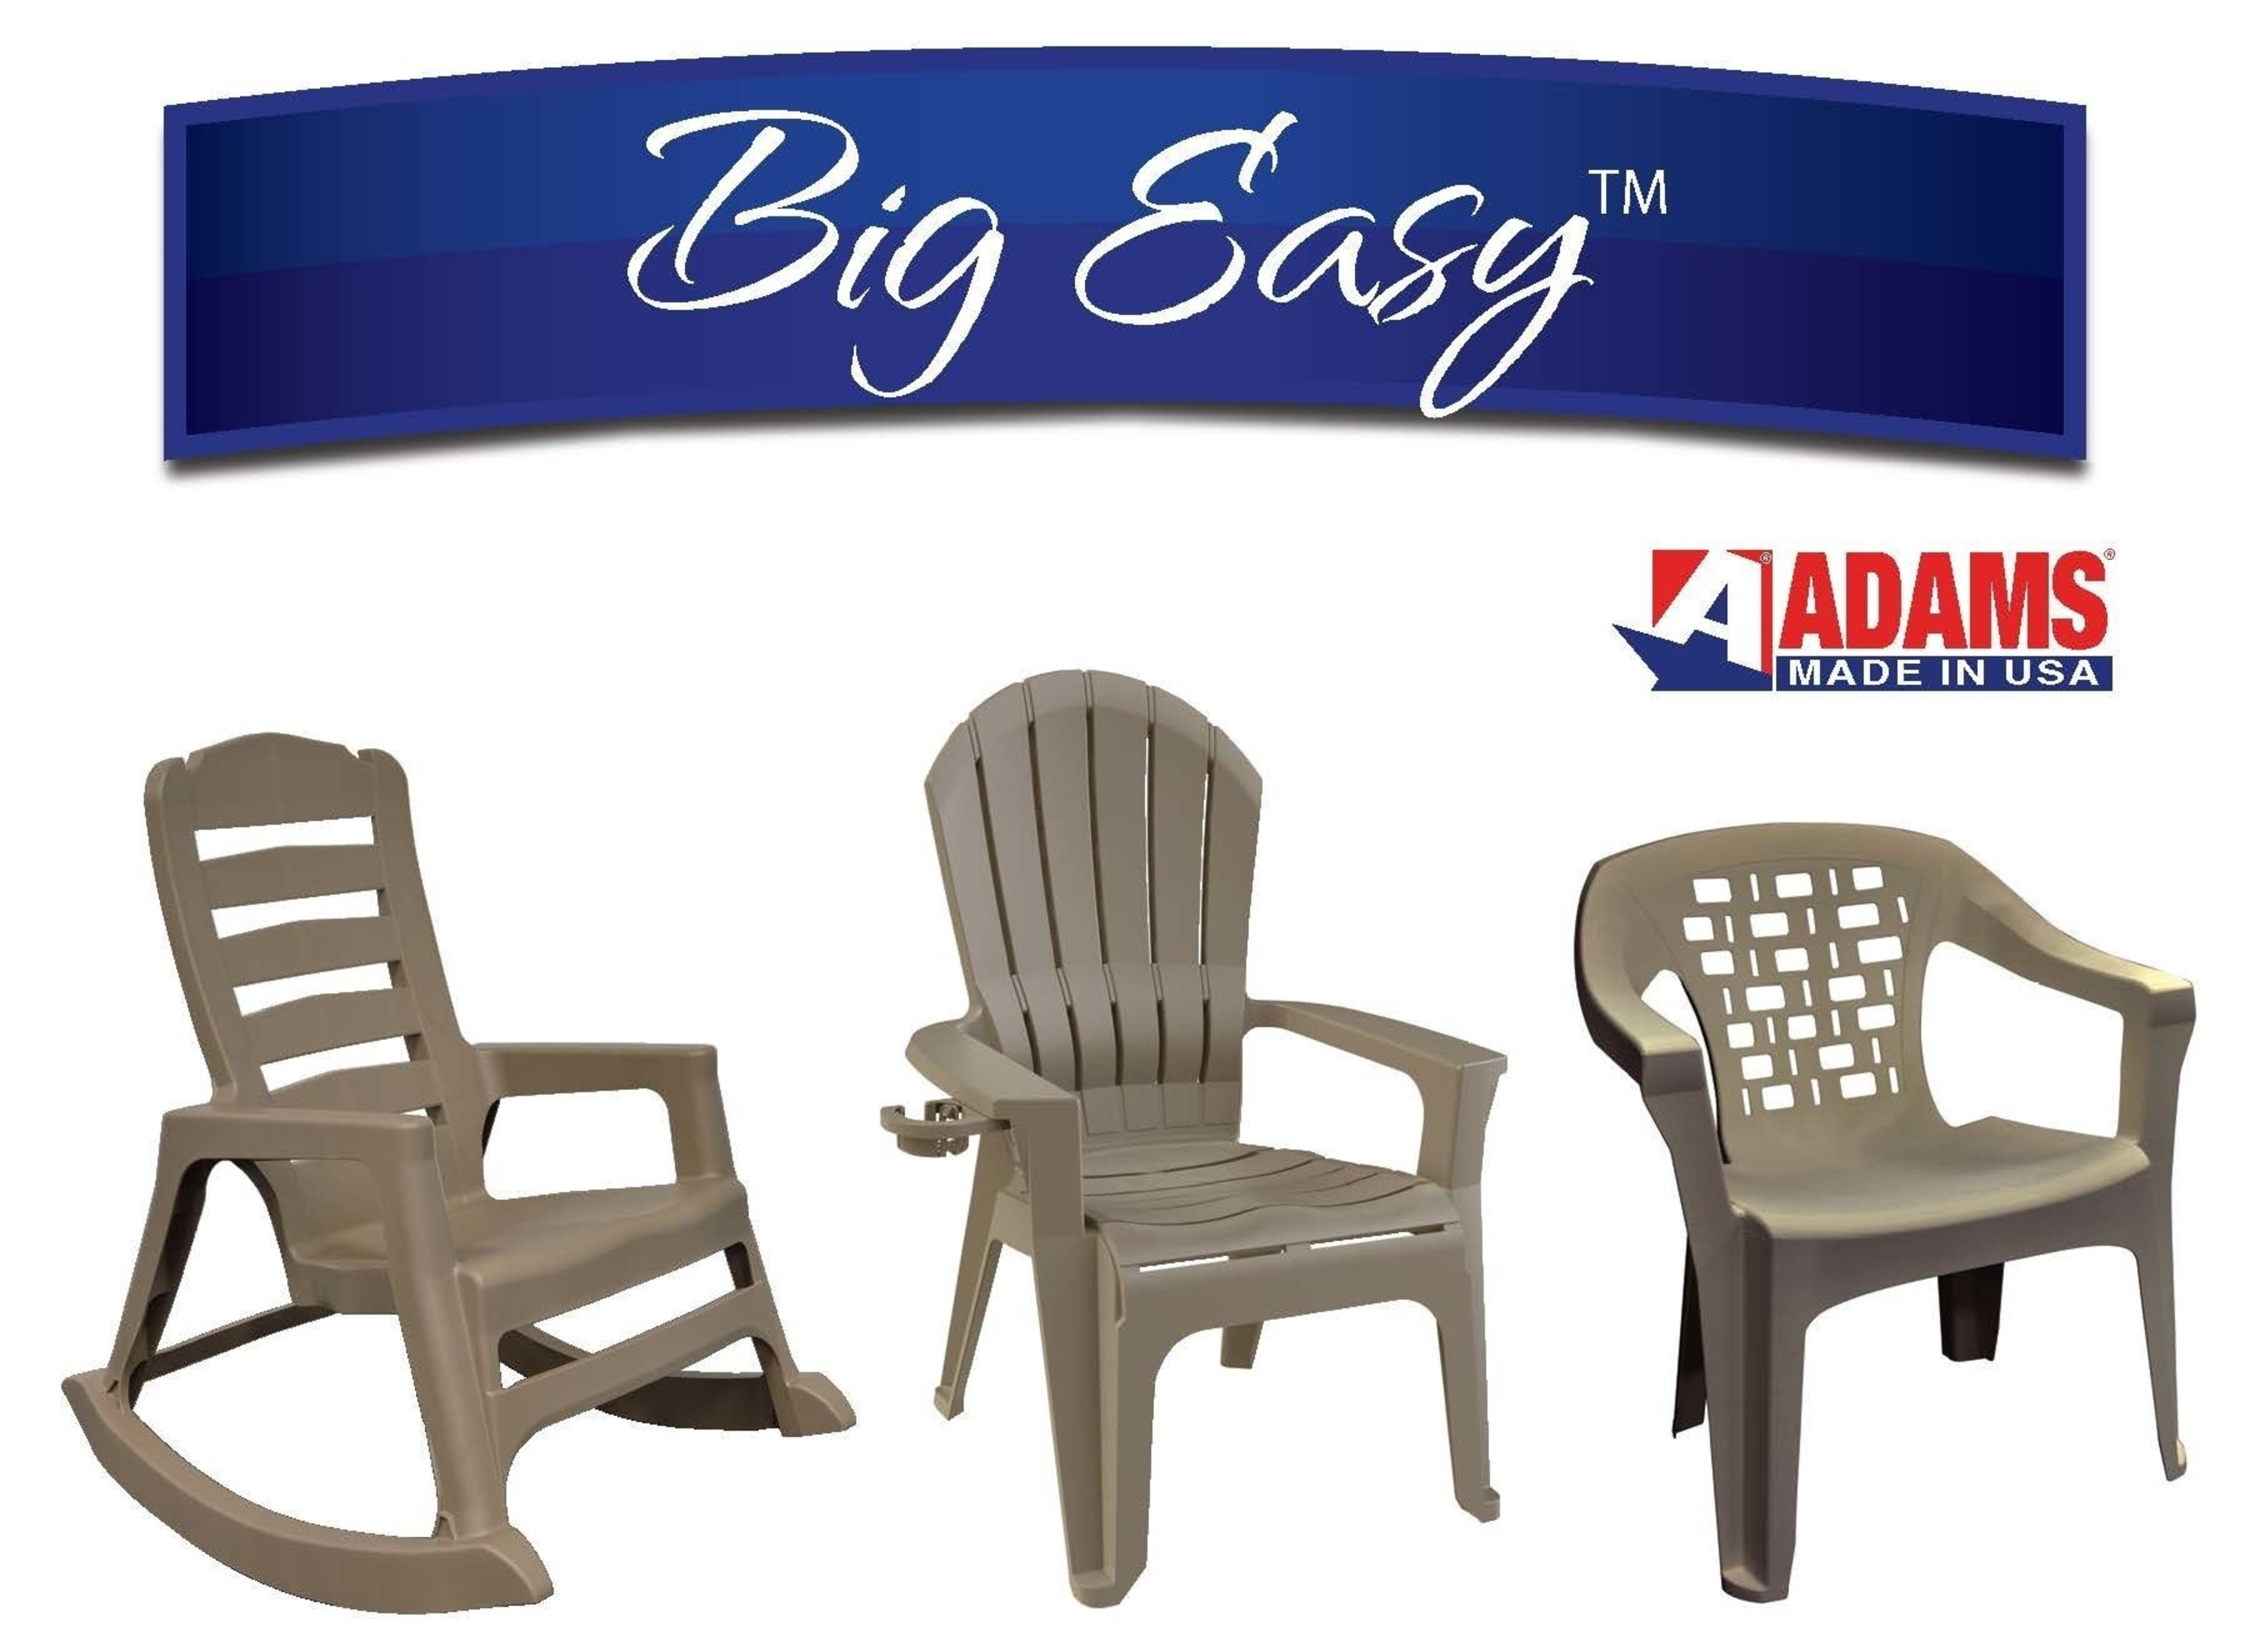 Adams Manufacturing To Unveil Big Easy Line Of Oversized